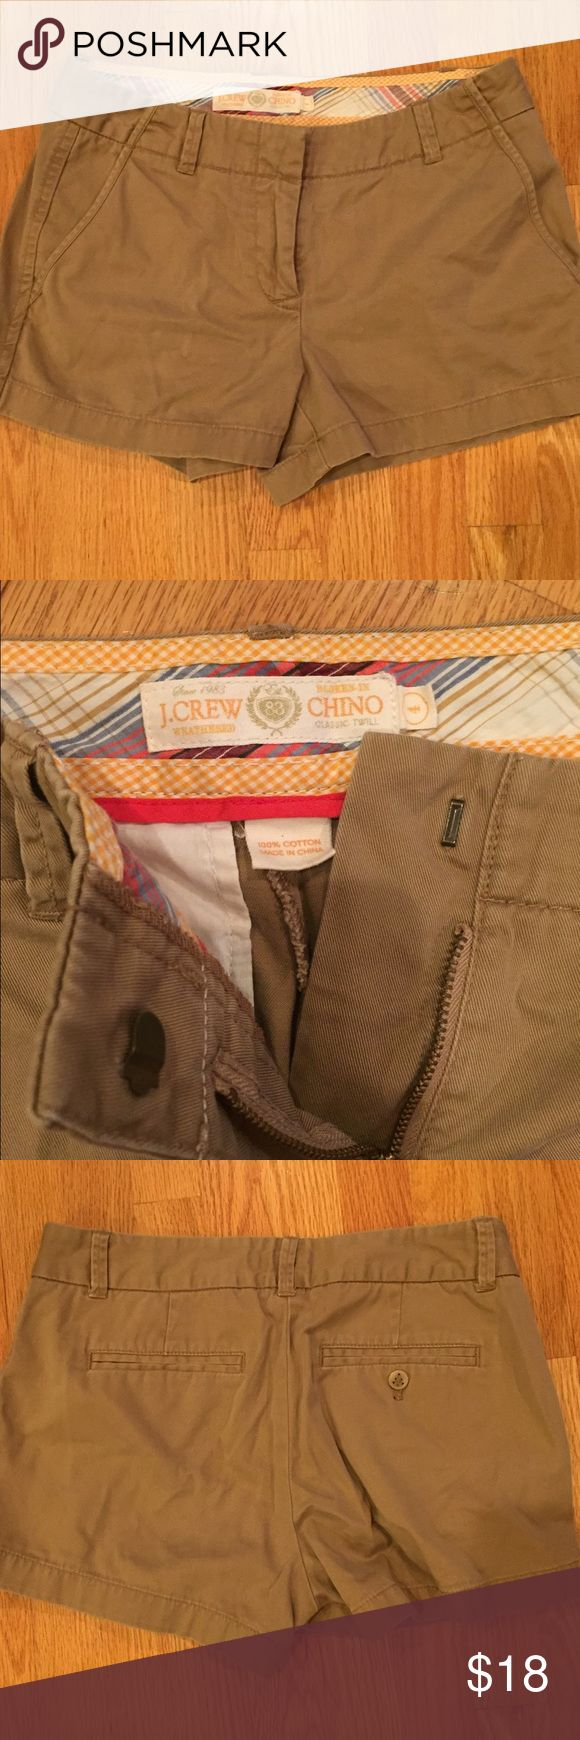 """J.Crew 3"""" Beige Chinos These shorts are a khaki/beige and are classic J.Crew shorts. They are a size 4 with a 3"""" inseam. J. Crew Shorts Bermudas"""